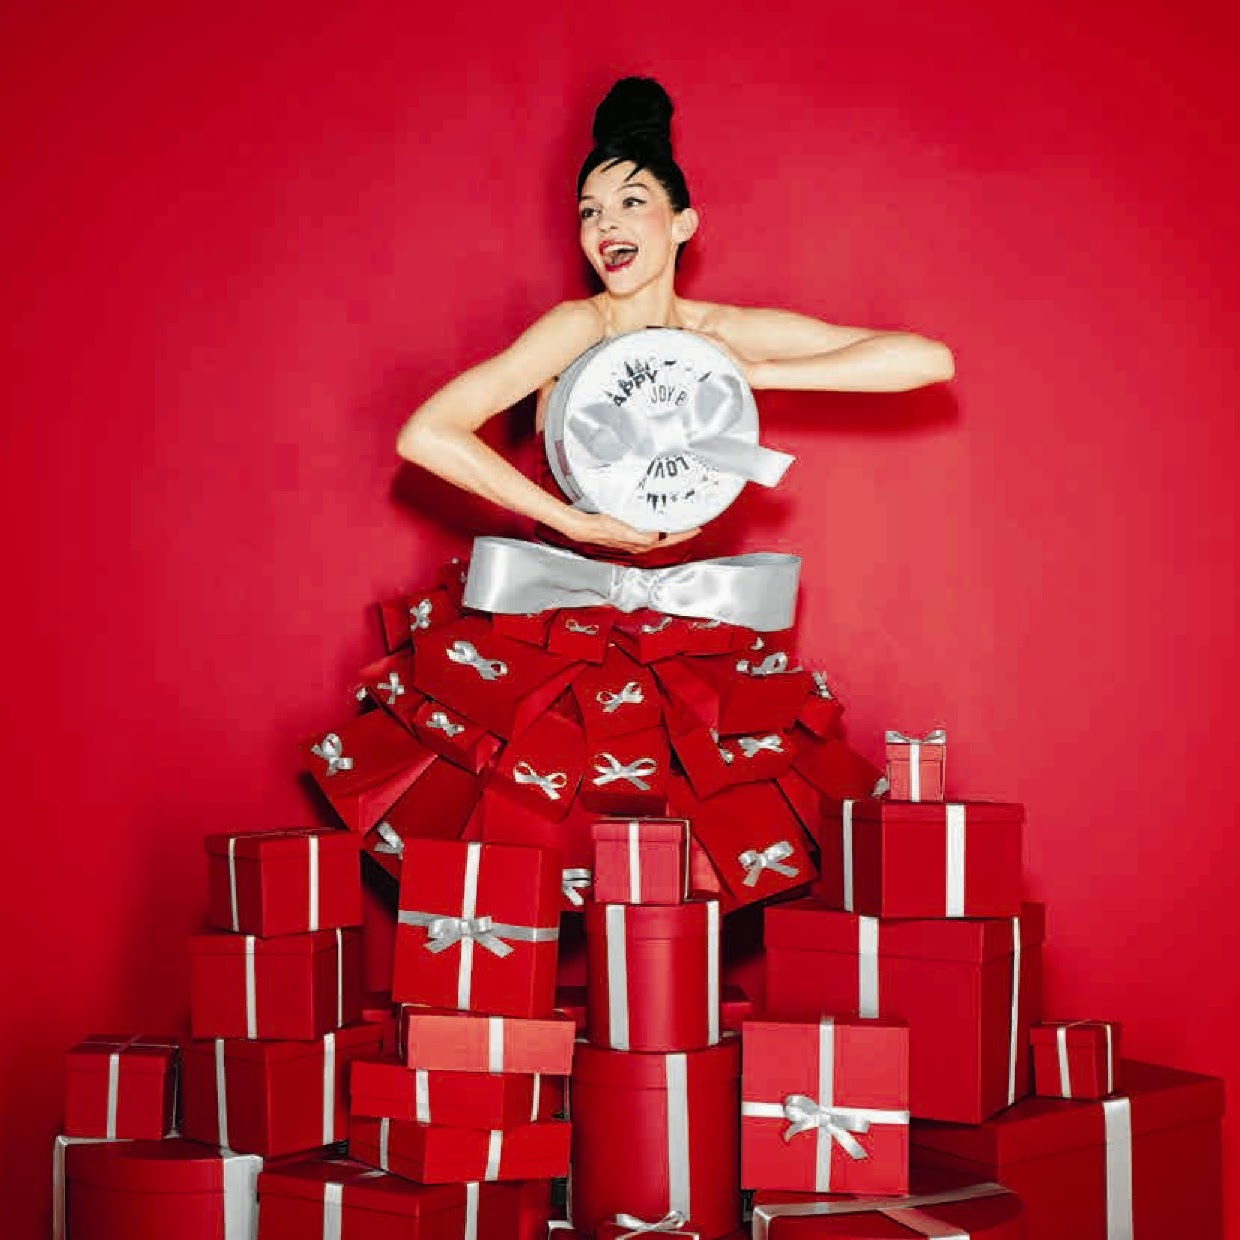 Must-Have Products This Christmas By The Body Shop